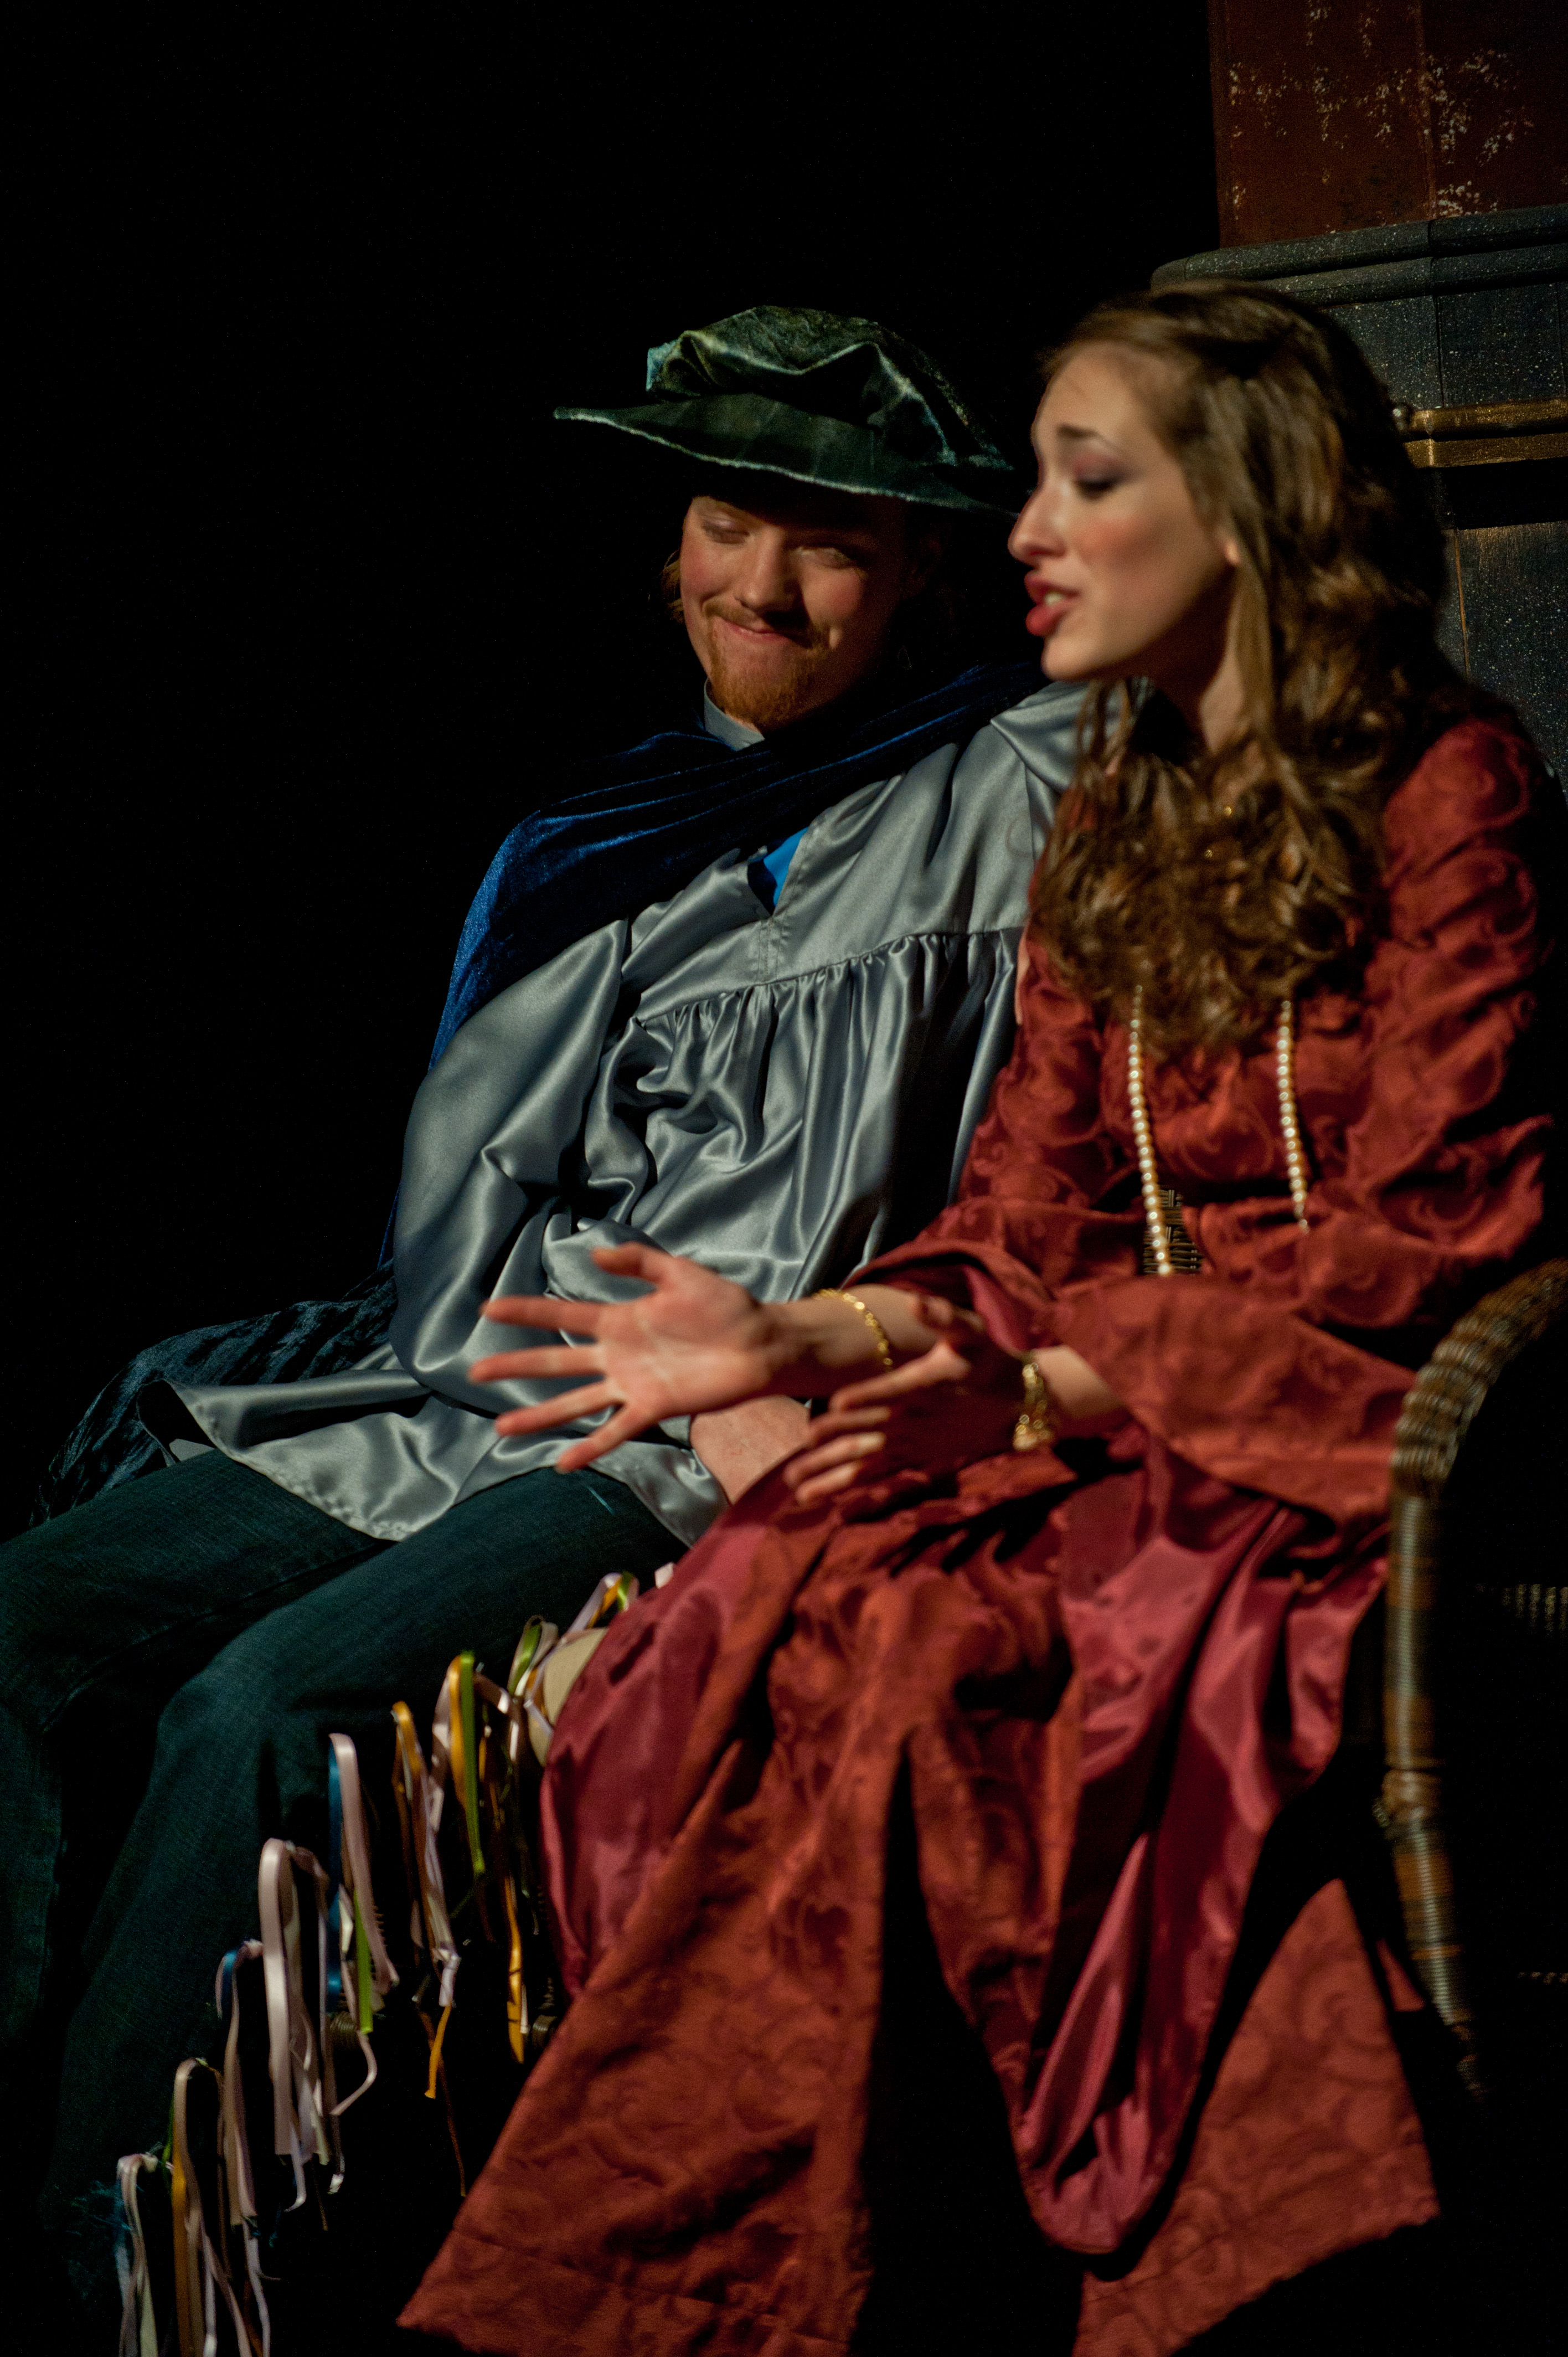 merchant of venice jessica and lorenzo relationship